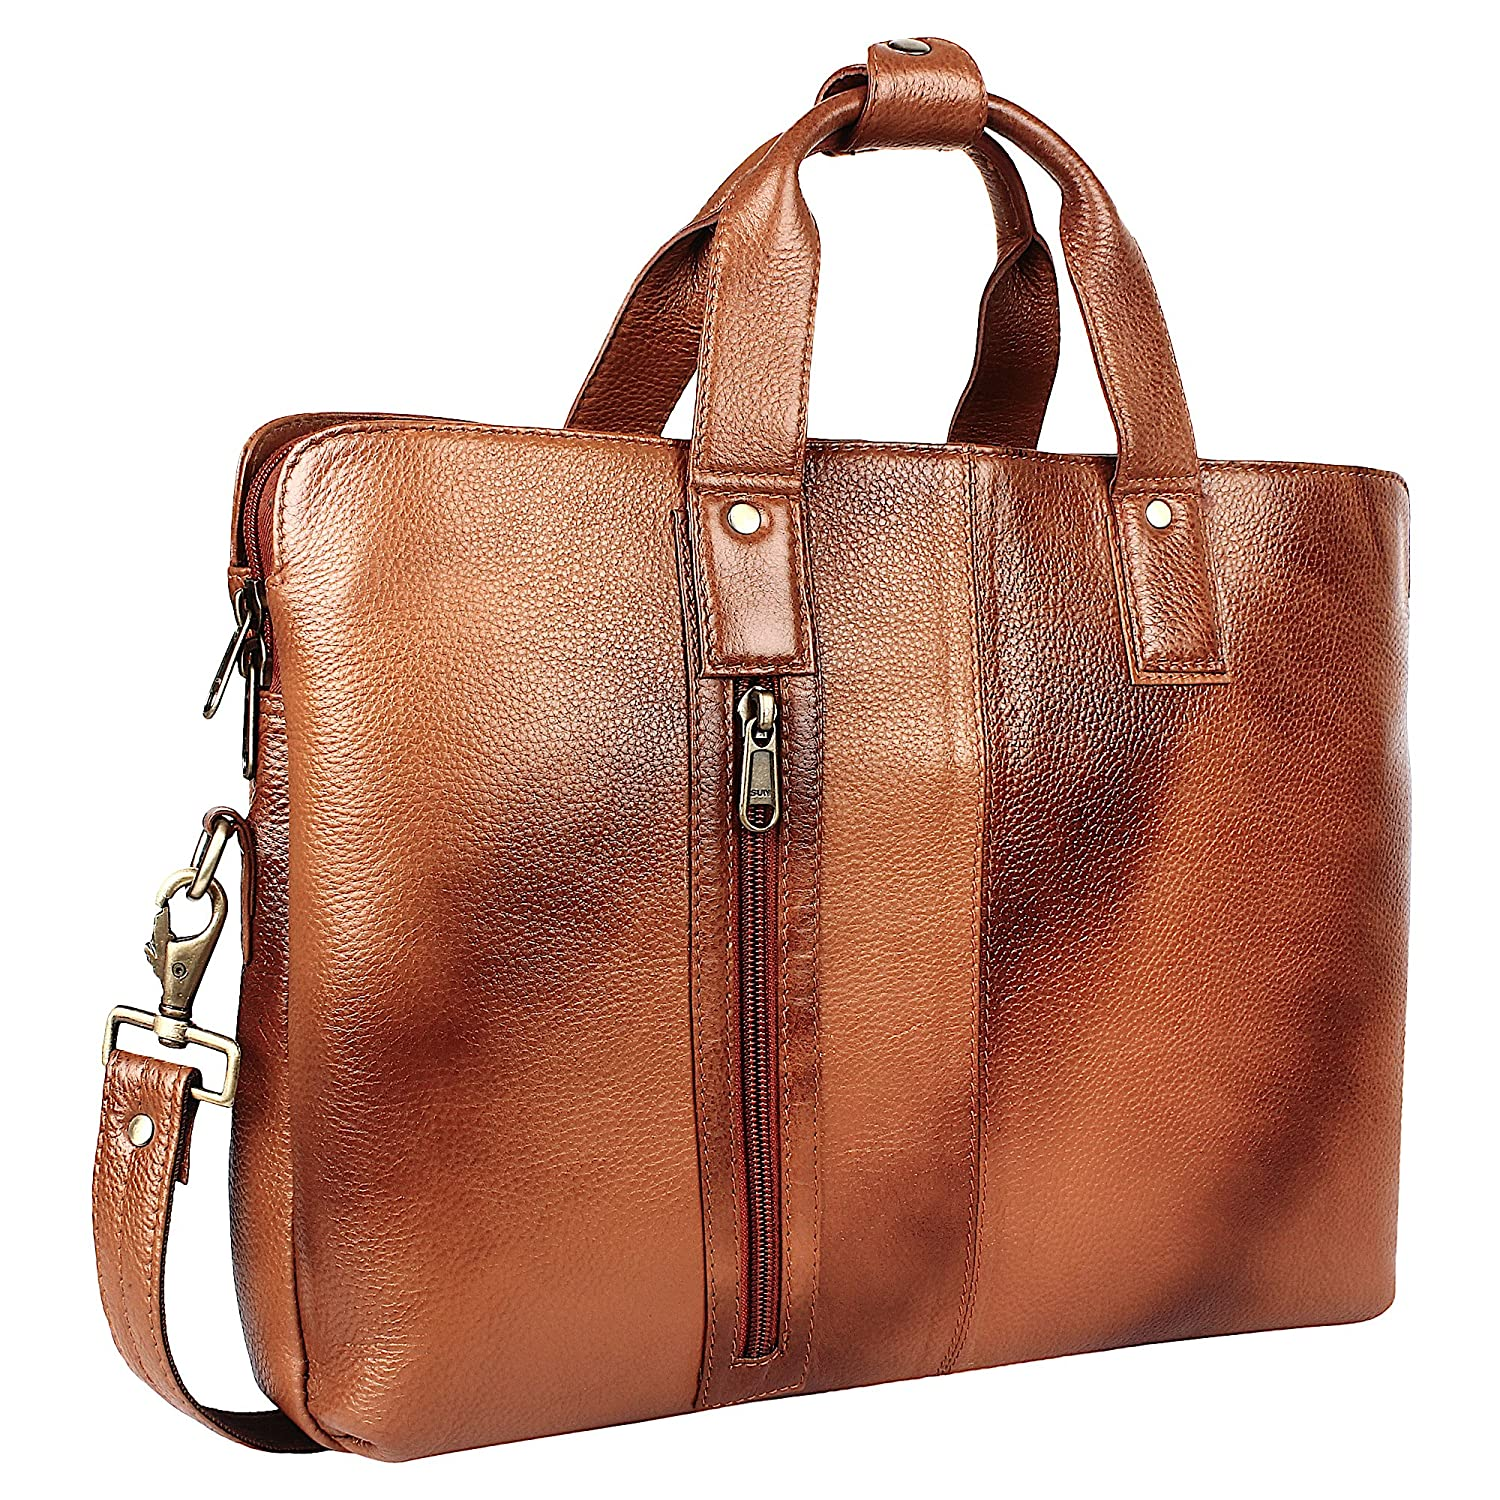 4ec244cfb5edf Genuine Leather High Grade Quality Brown Colour Laptop Messenger Bag for  Office Use - by OMAX  Amazon.in  Bags